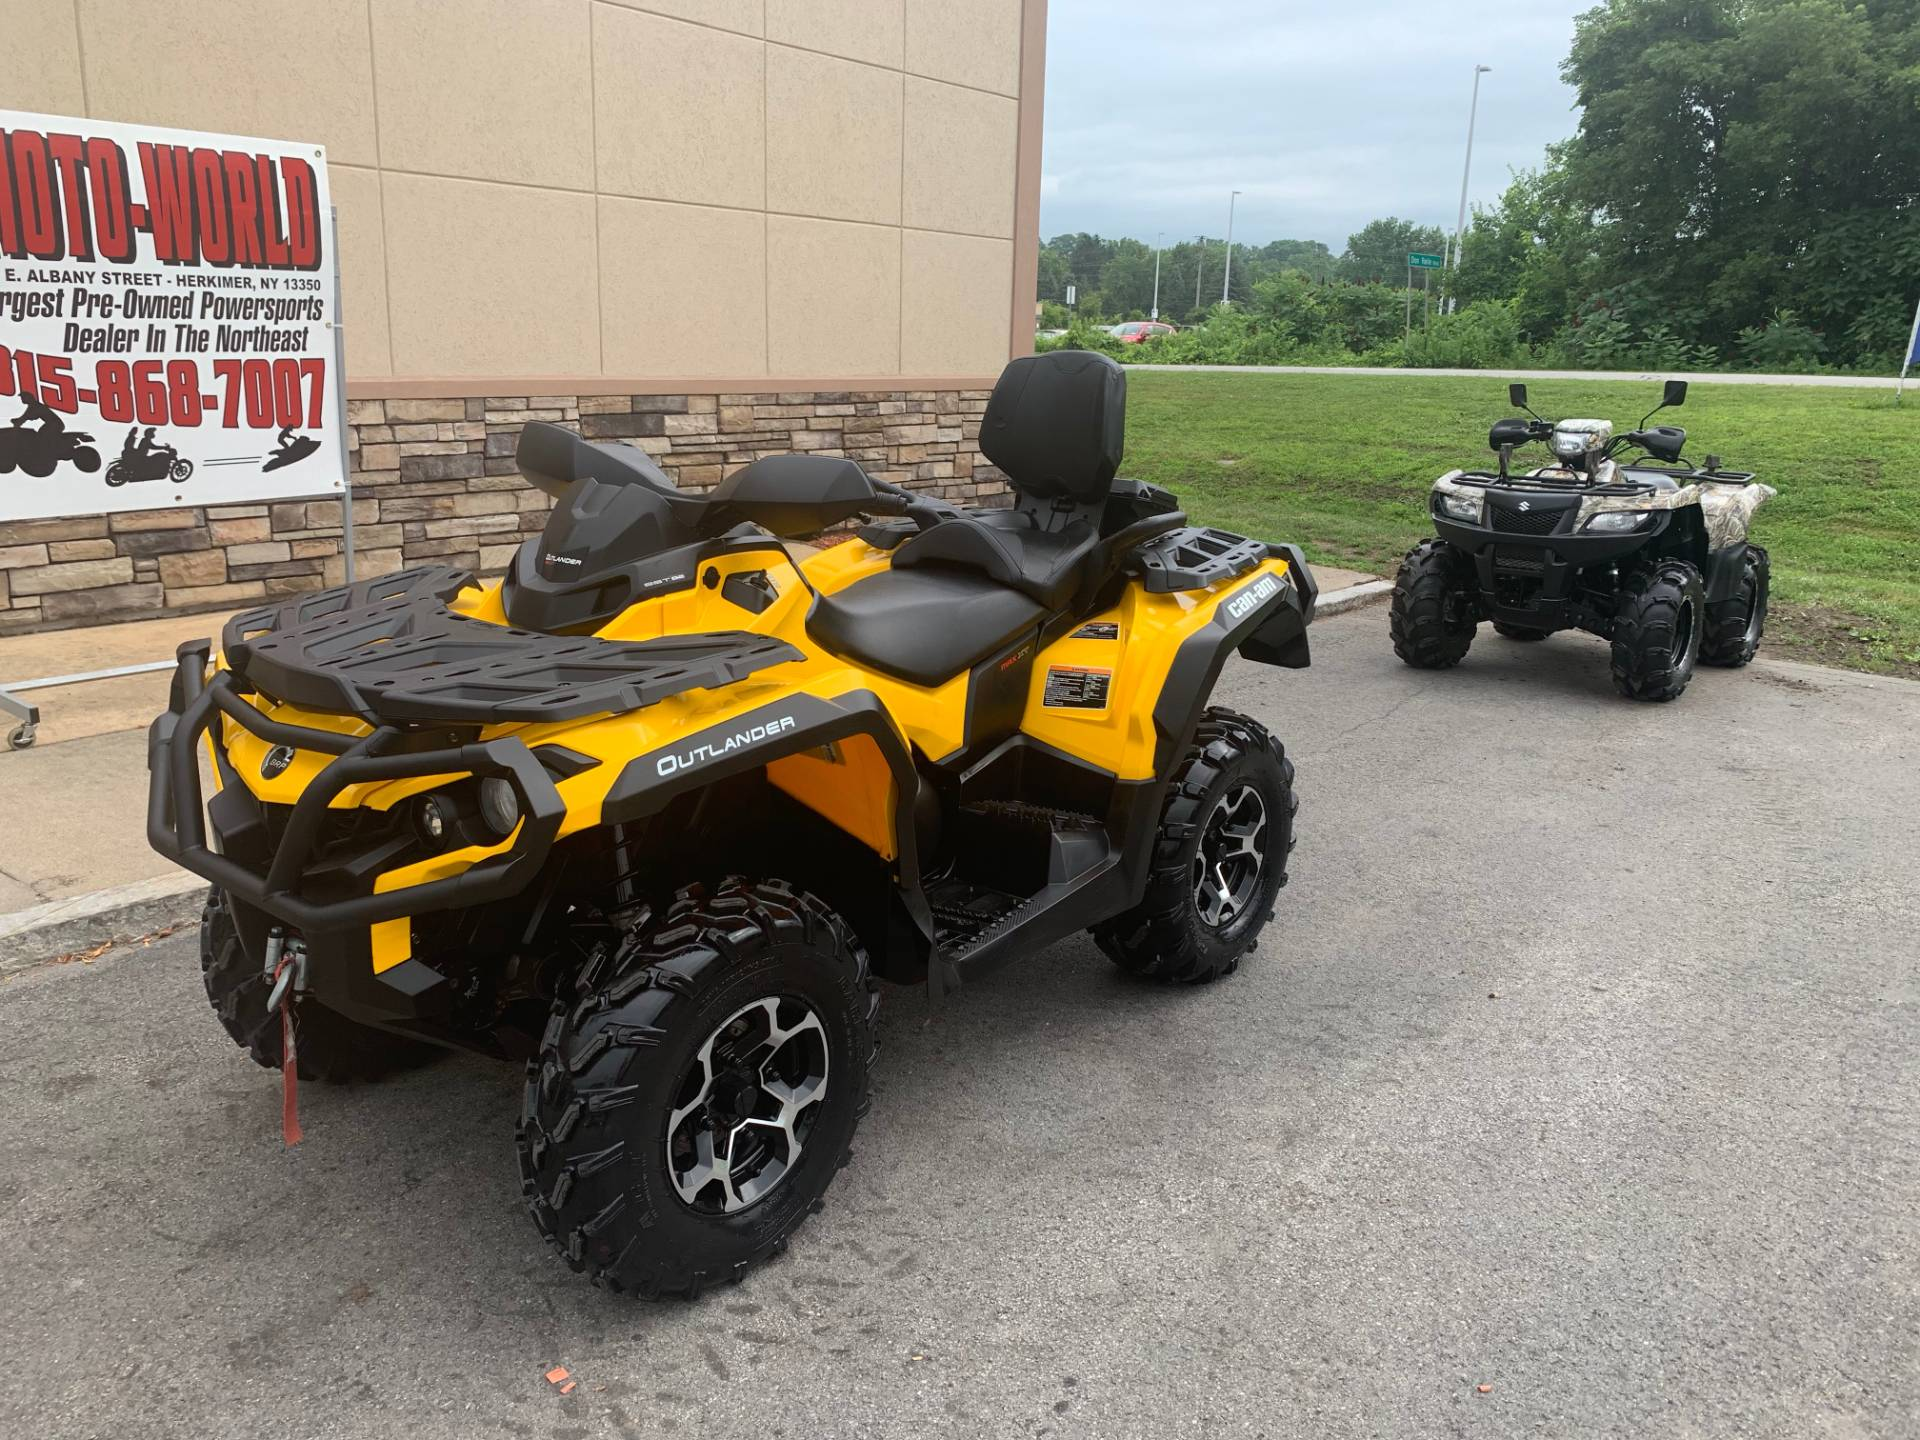 2016 Can-Am Outlander MAX XT 570 in Herkimer, New York - Photo 10